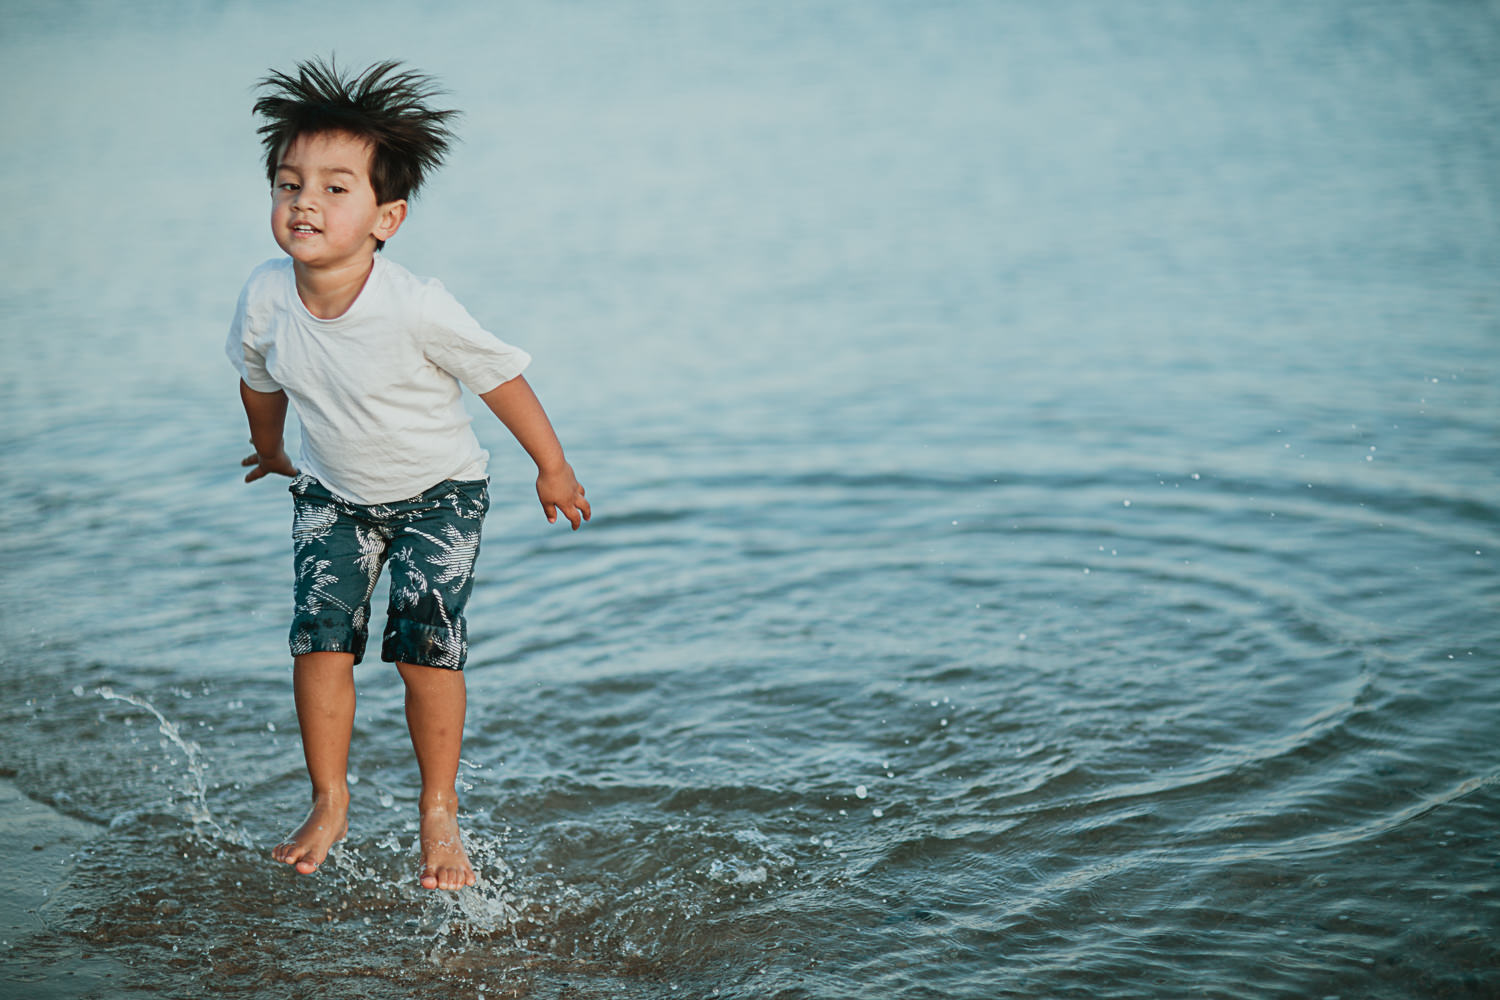 Photo of child in Port melbourne in the water at the Beach - Port Melbourne Photographer